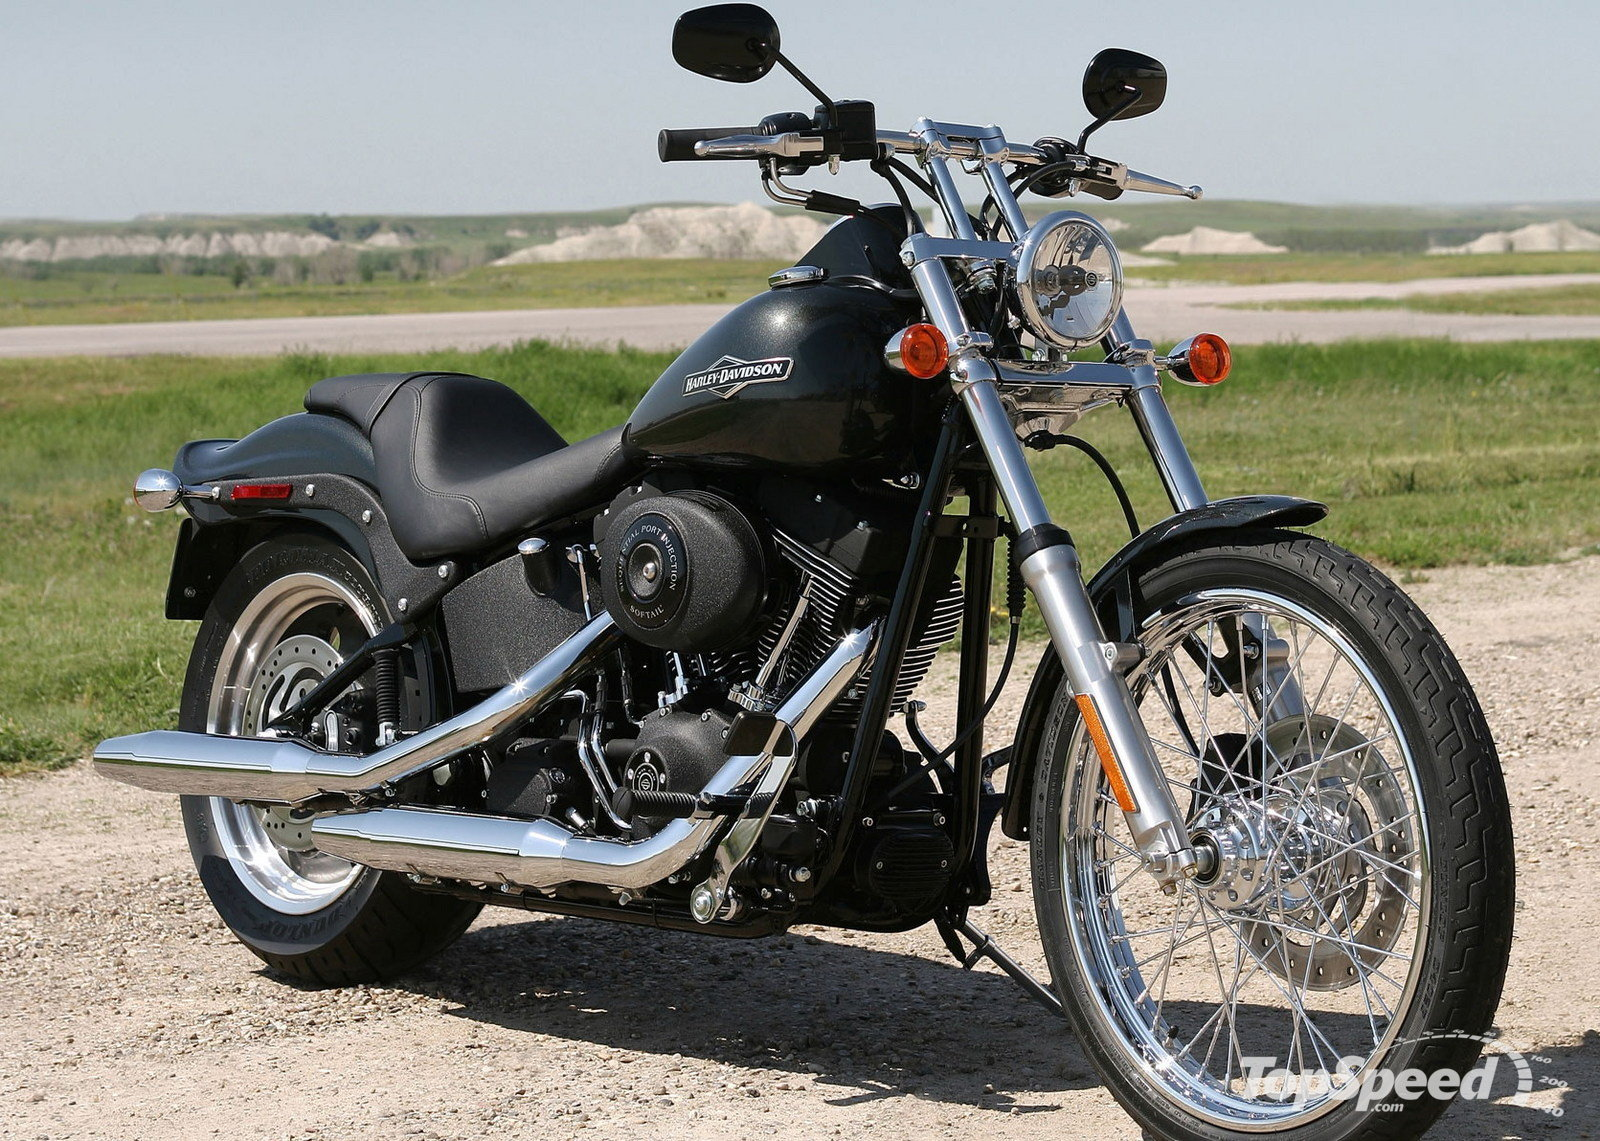 2002 harley davidson fxstb night train pics specs and. Black Bedroom Furniture Sets. Home Design Ideas